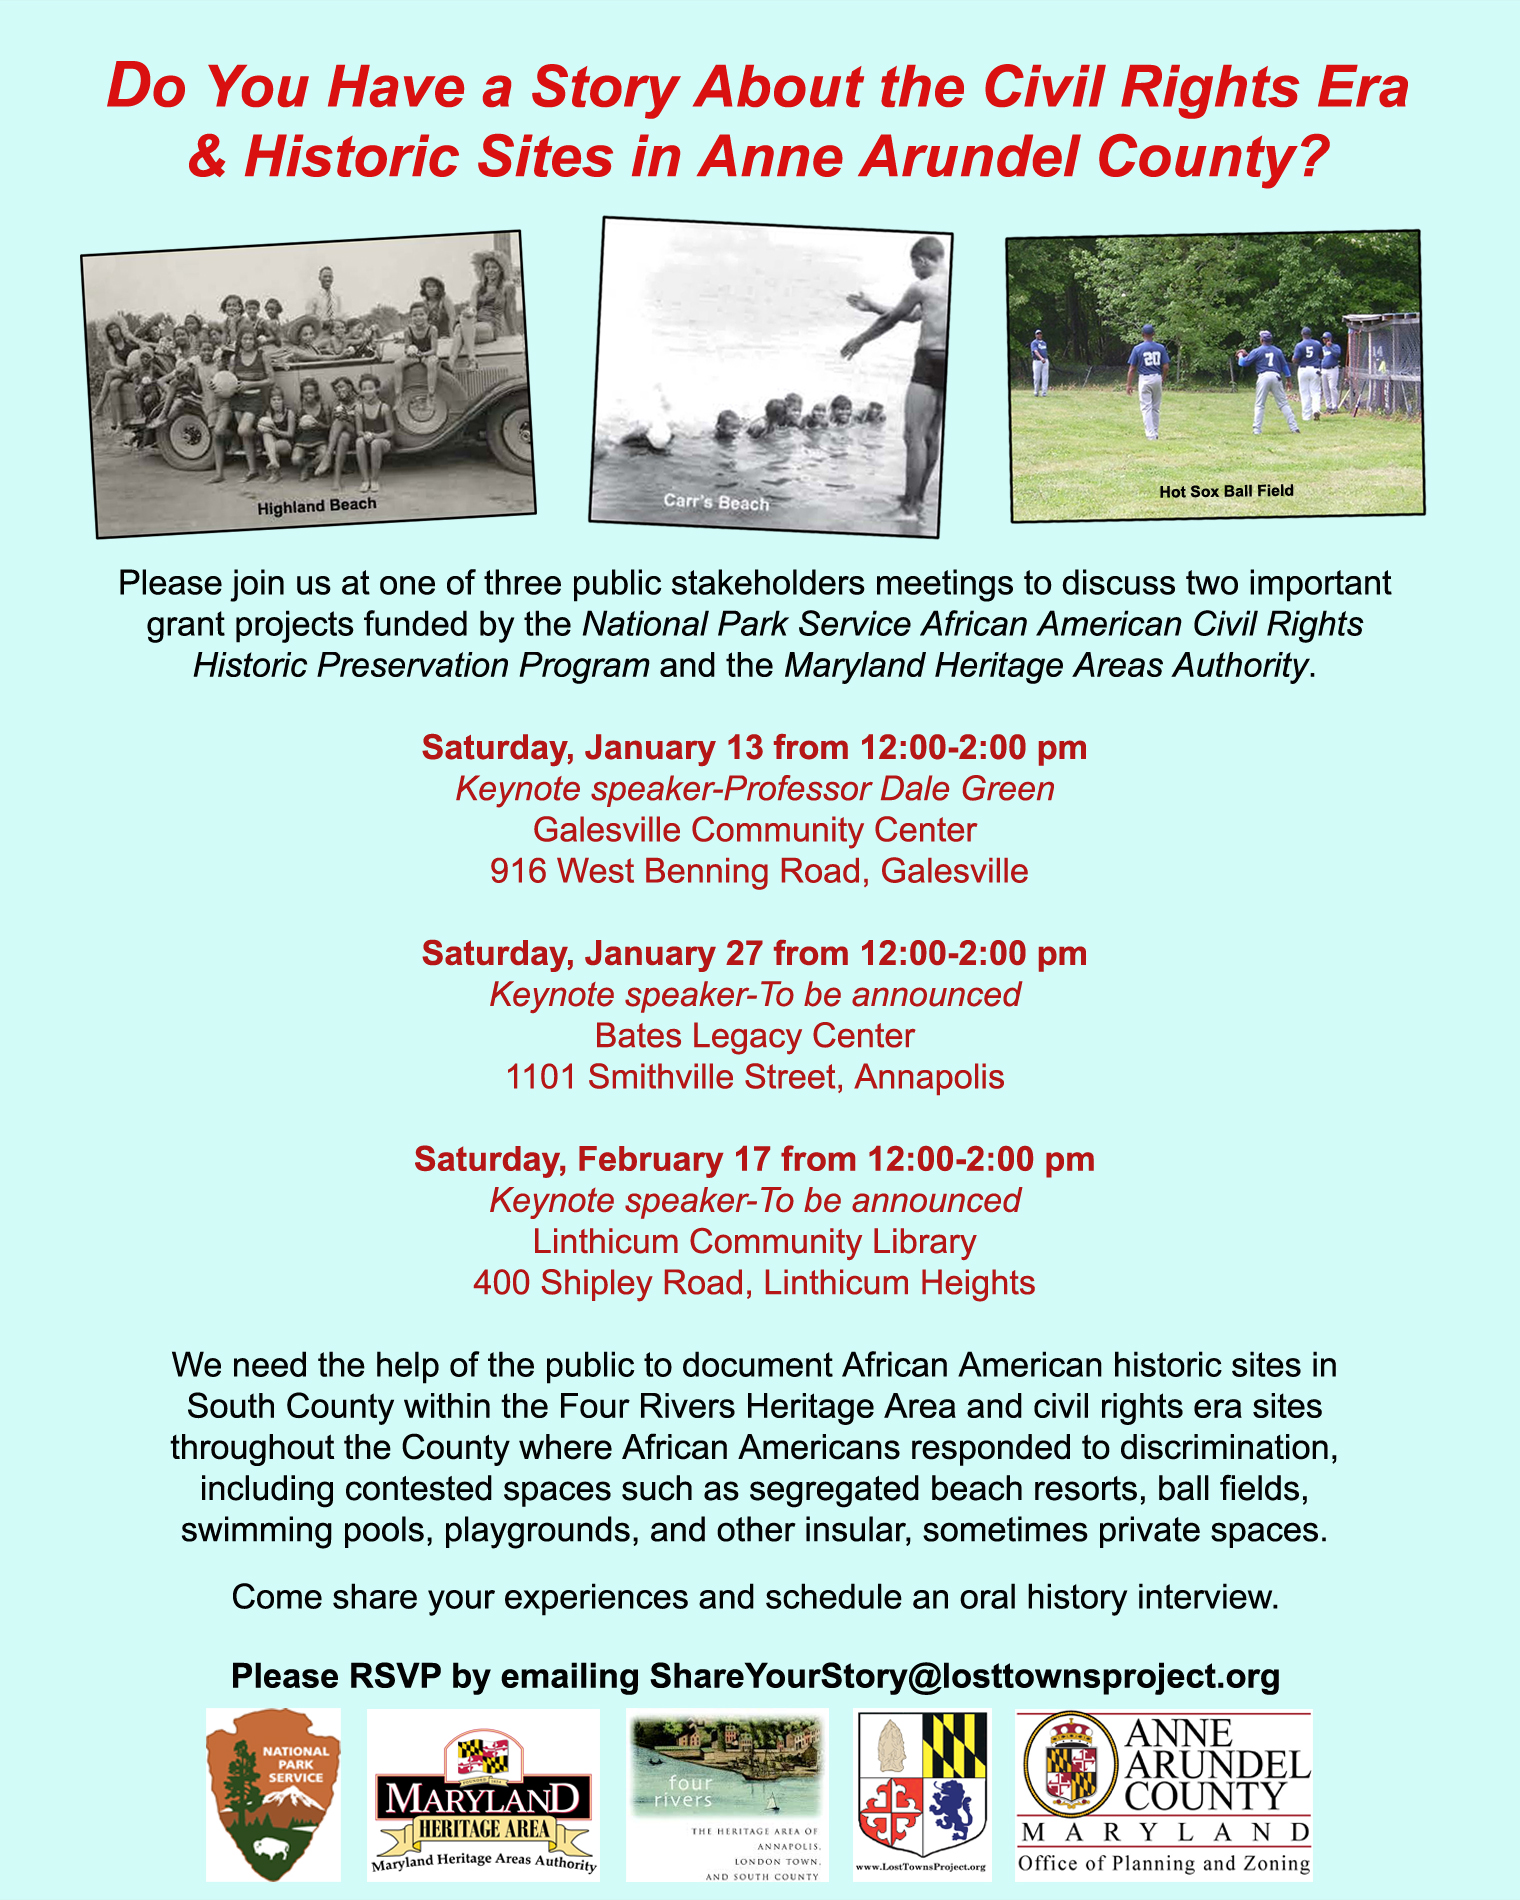 Upcoming NPS Civil Rights and MHAA Grants Public Meetings Flyer